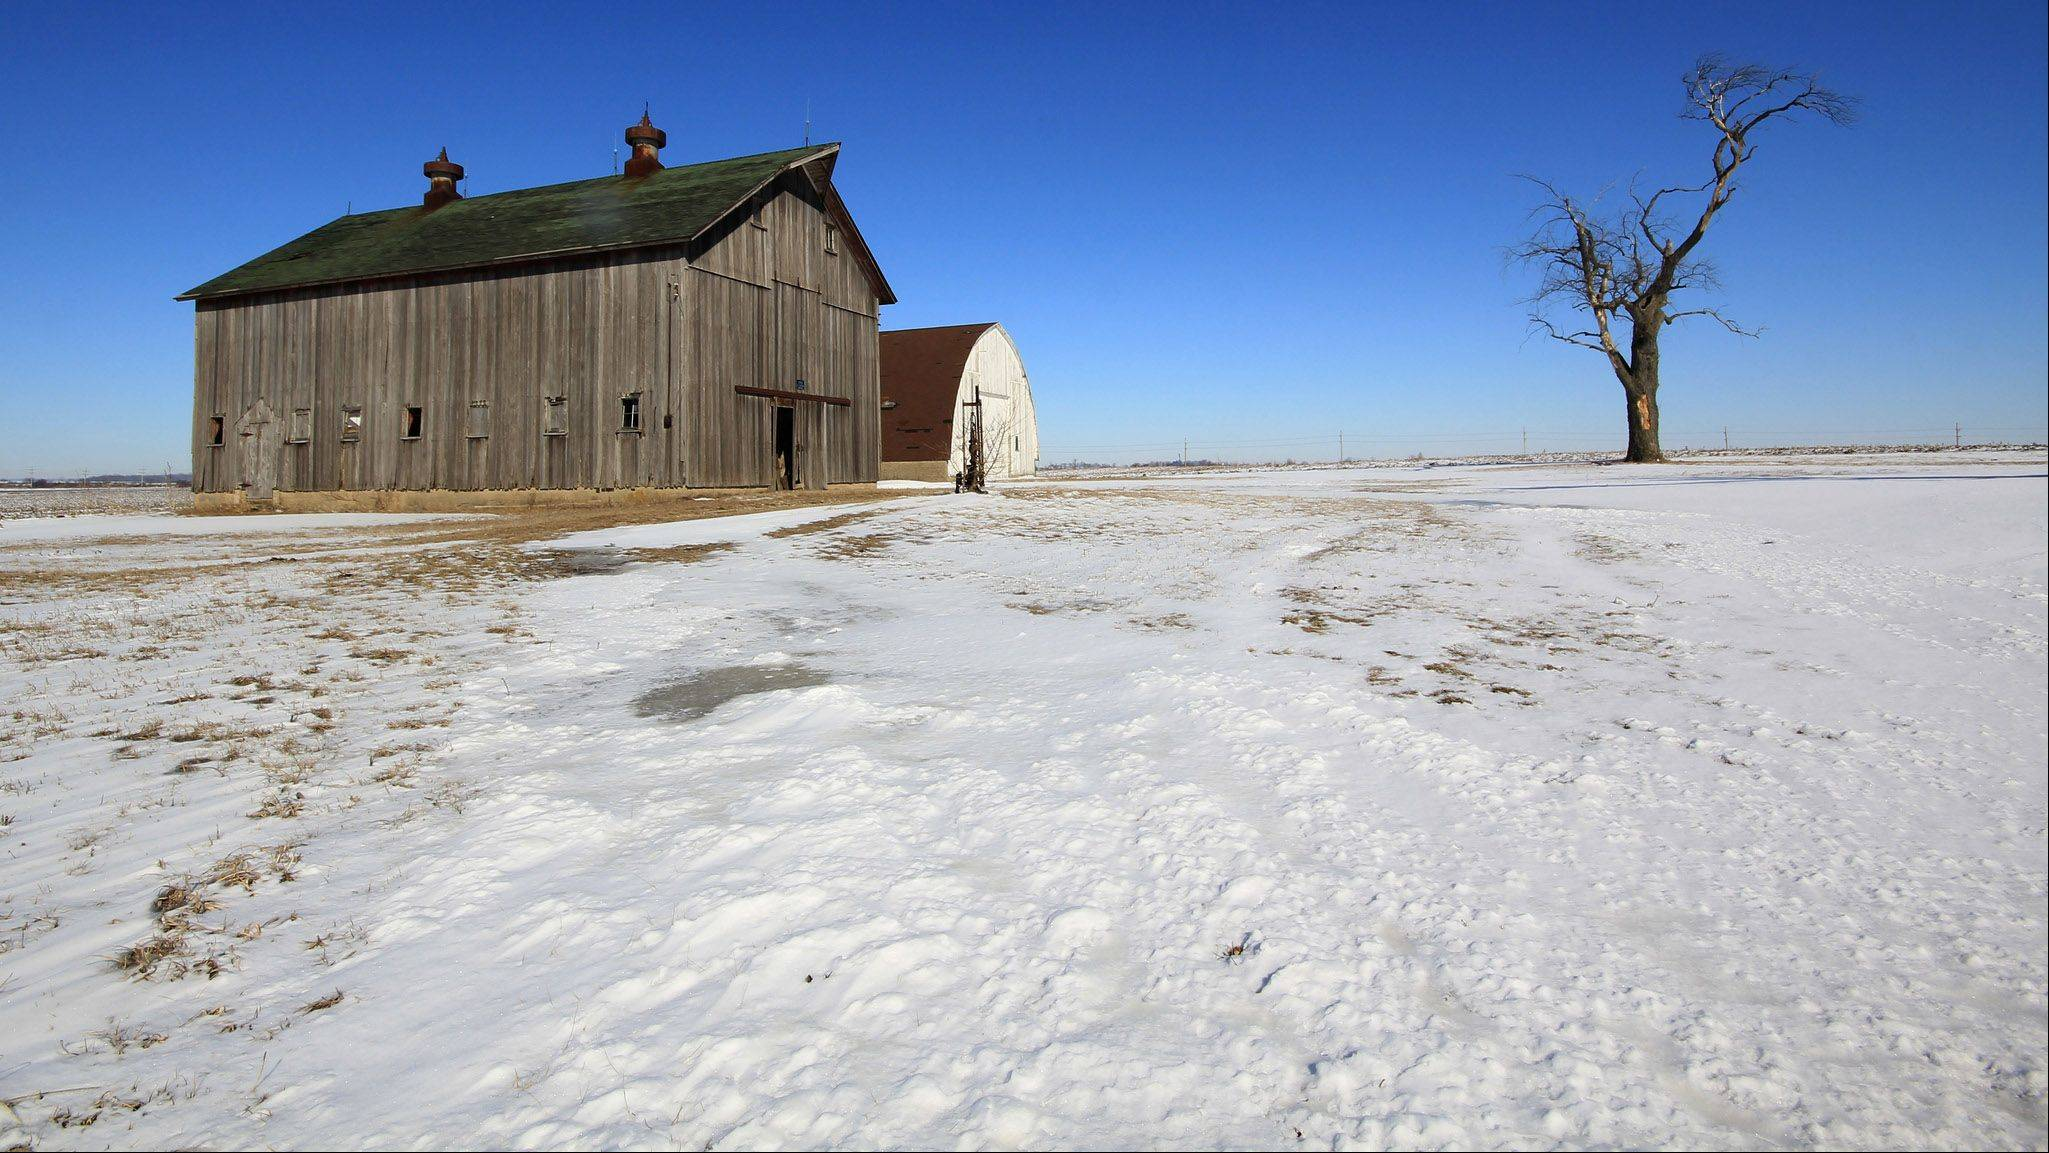 This is a barn along Illinois 72 close to Genoa, Illinois. The shot was taken on a beautiful winter day with a gorgeous blue sky. I really like the old barn and the lone tree against the snow covered landscape.